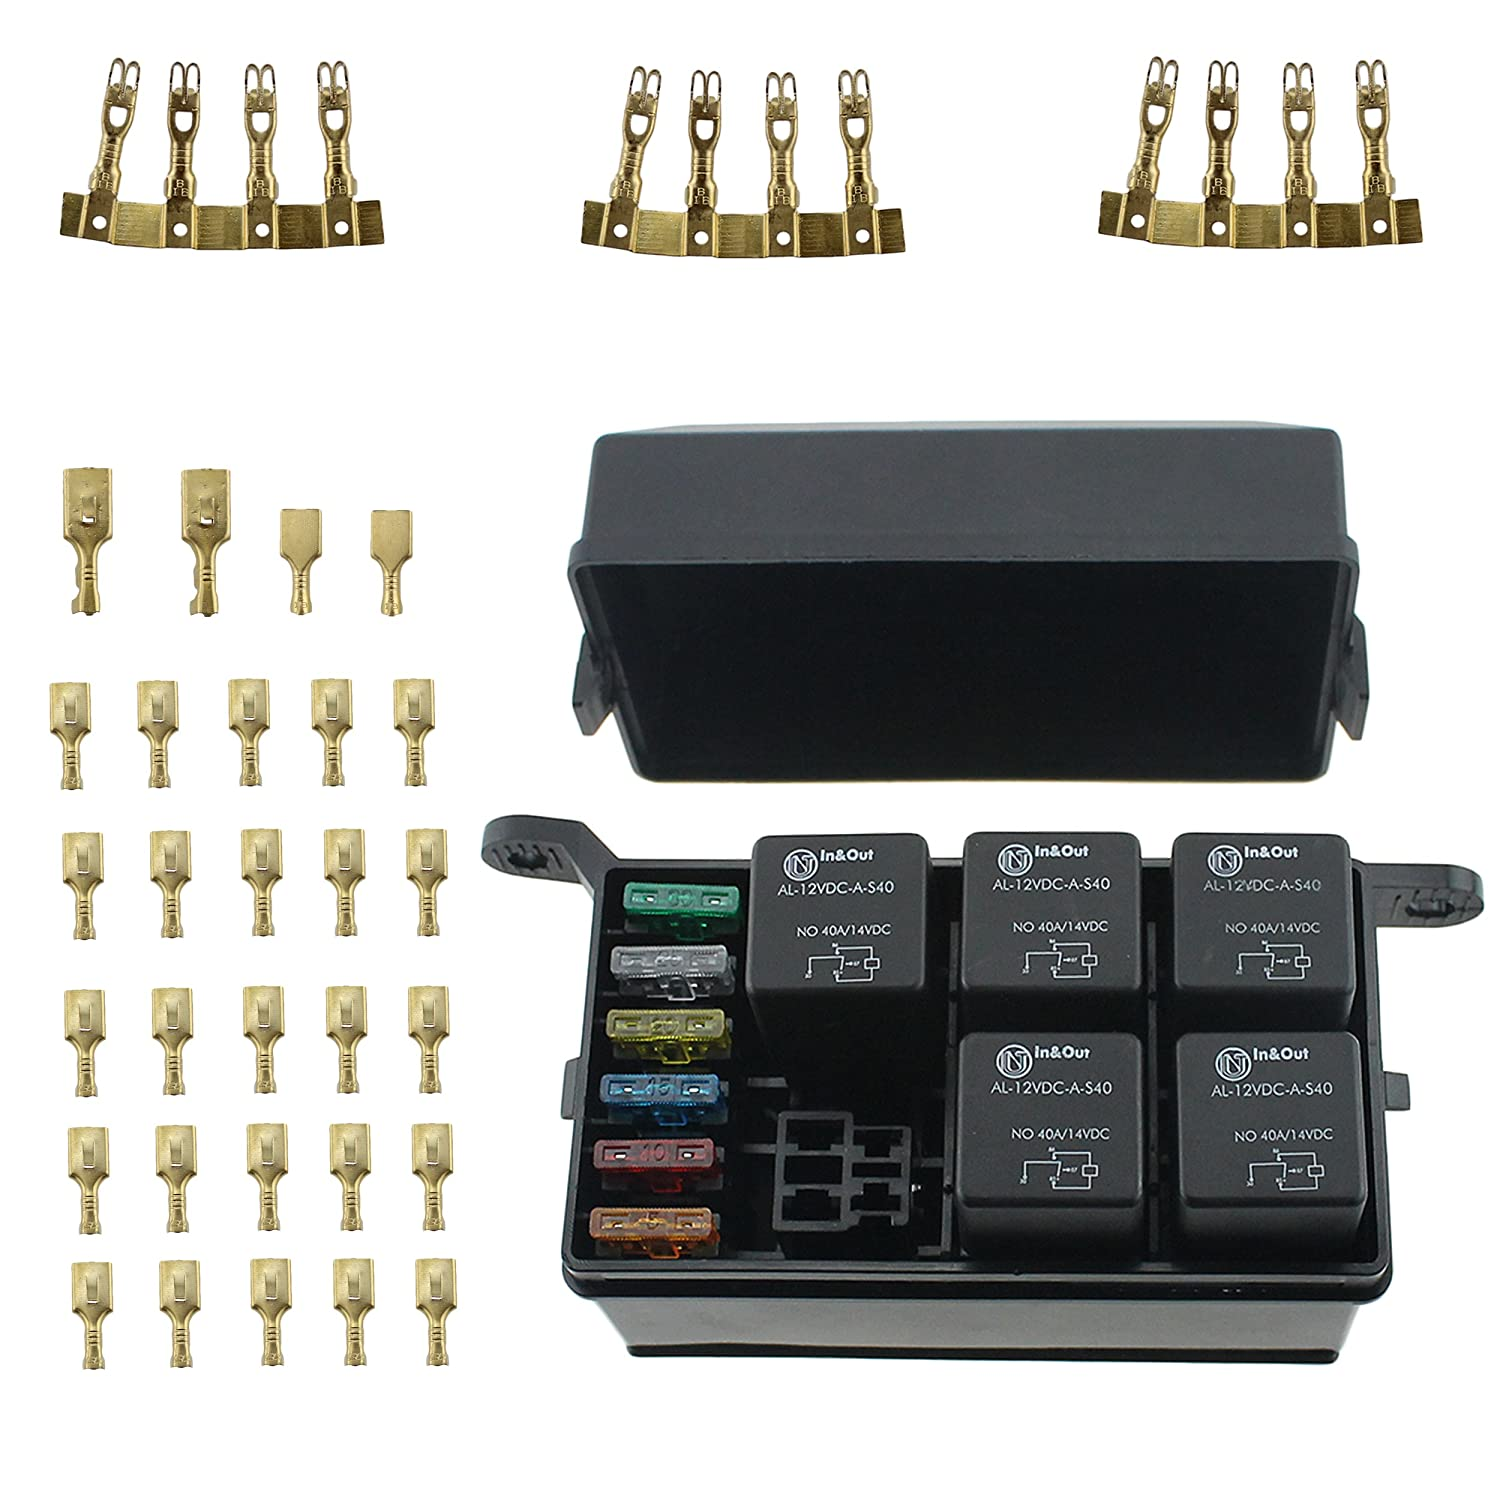 81Uj6Pmk1gL._SL1500_ amazon com fuse boxes fuses & accessories automotive  at readyjetset.co